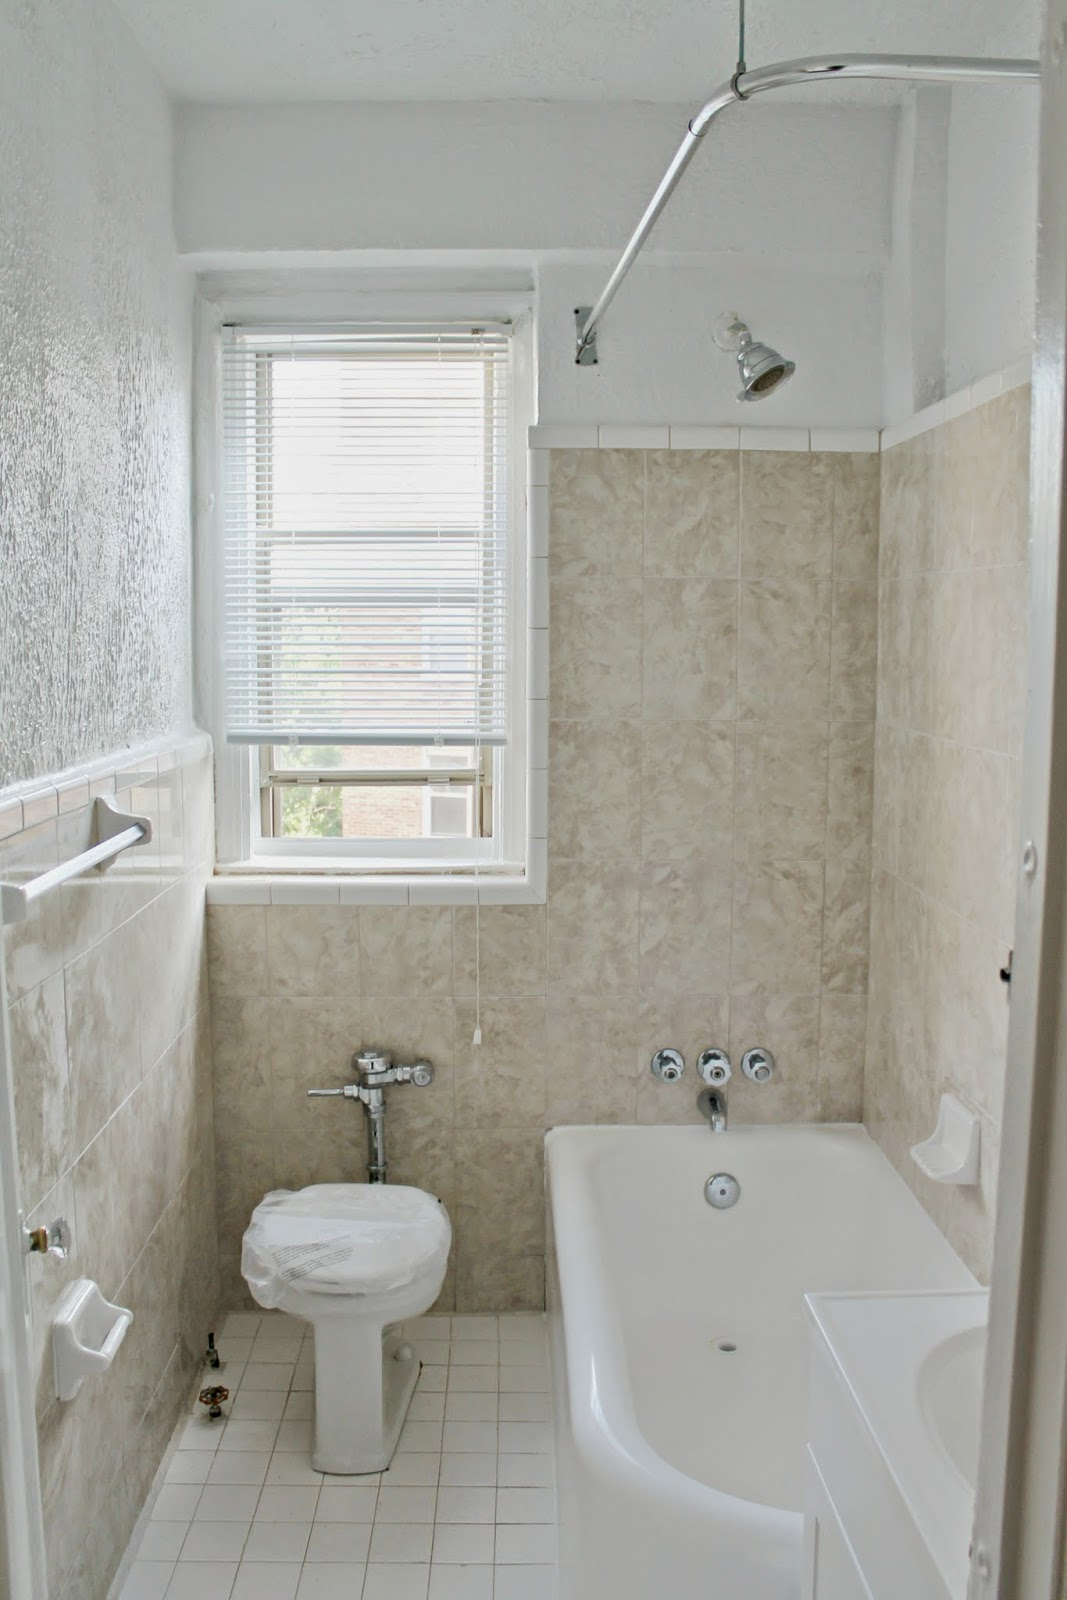 Textured walls in bathroom - Apartment Bathroom Makeover Reveal